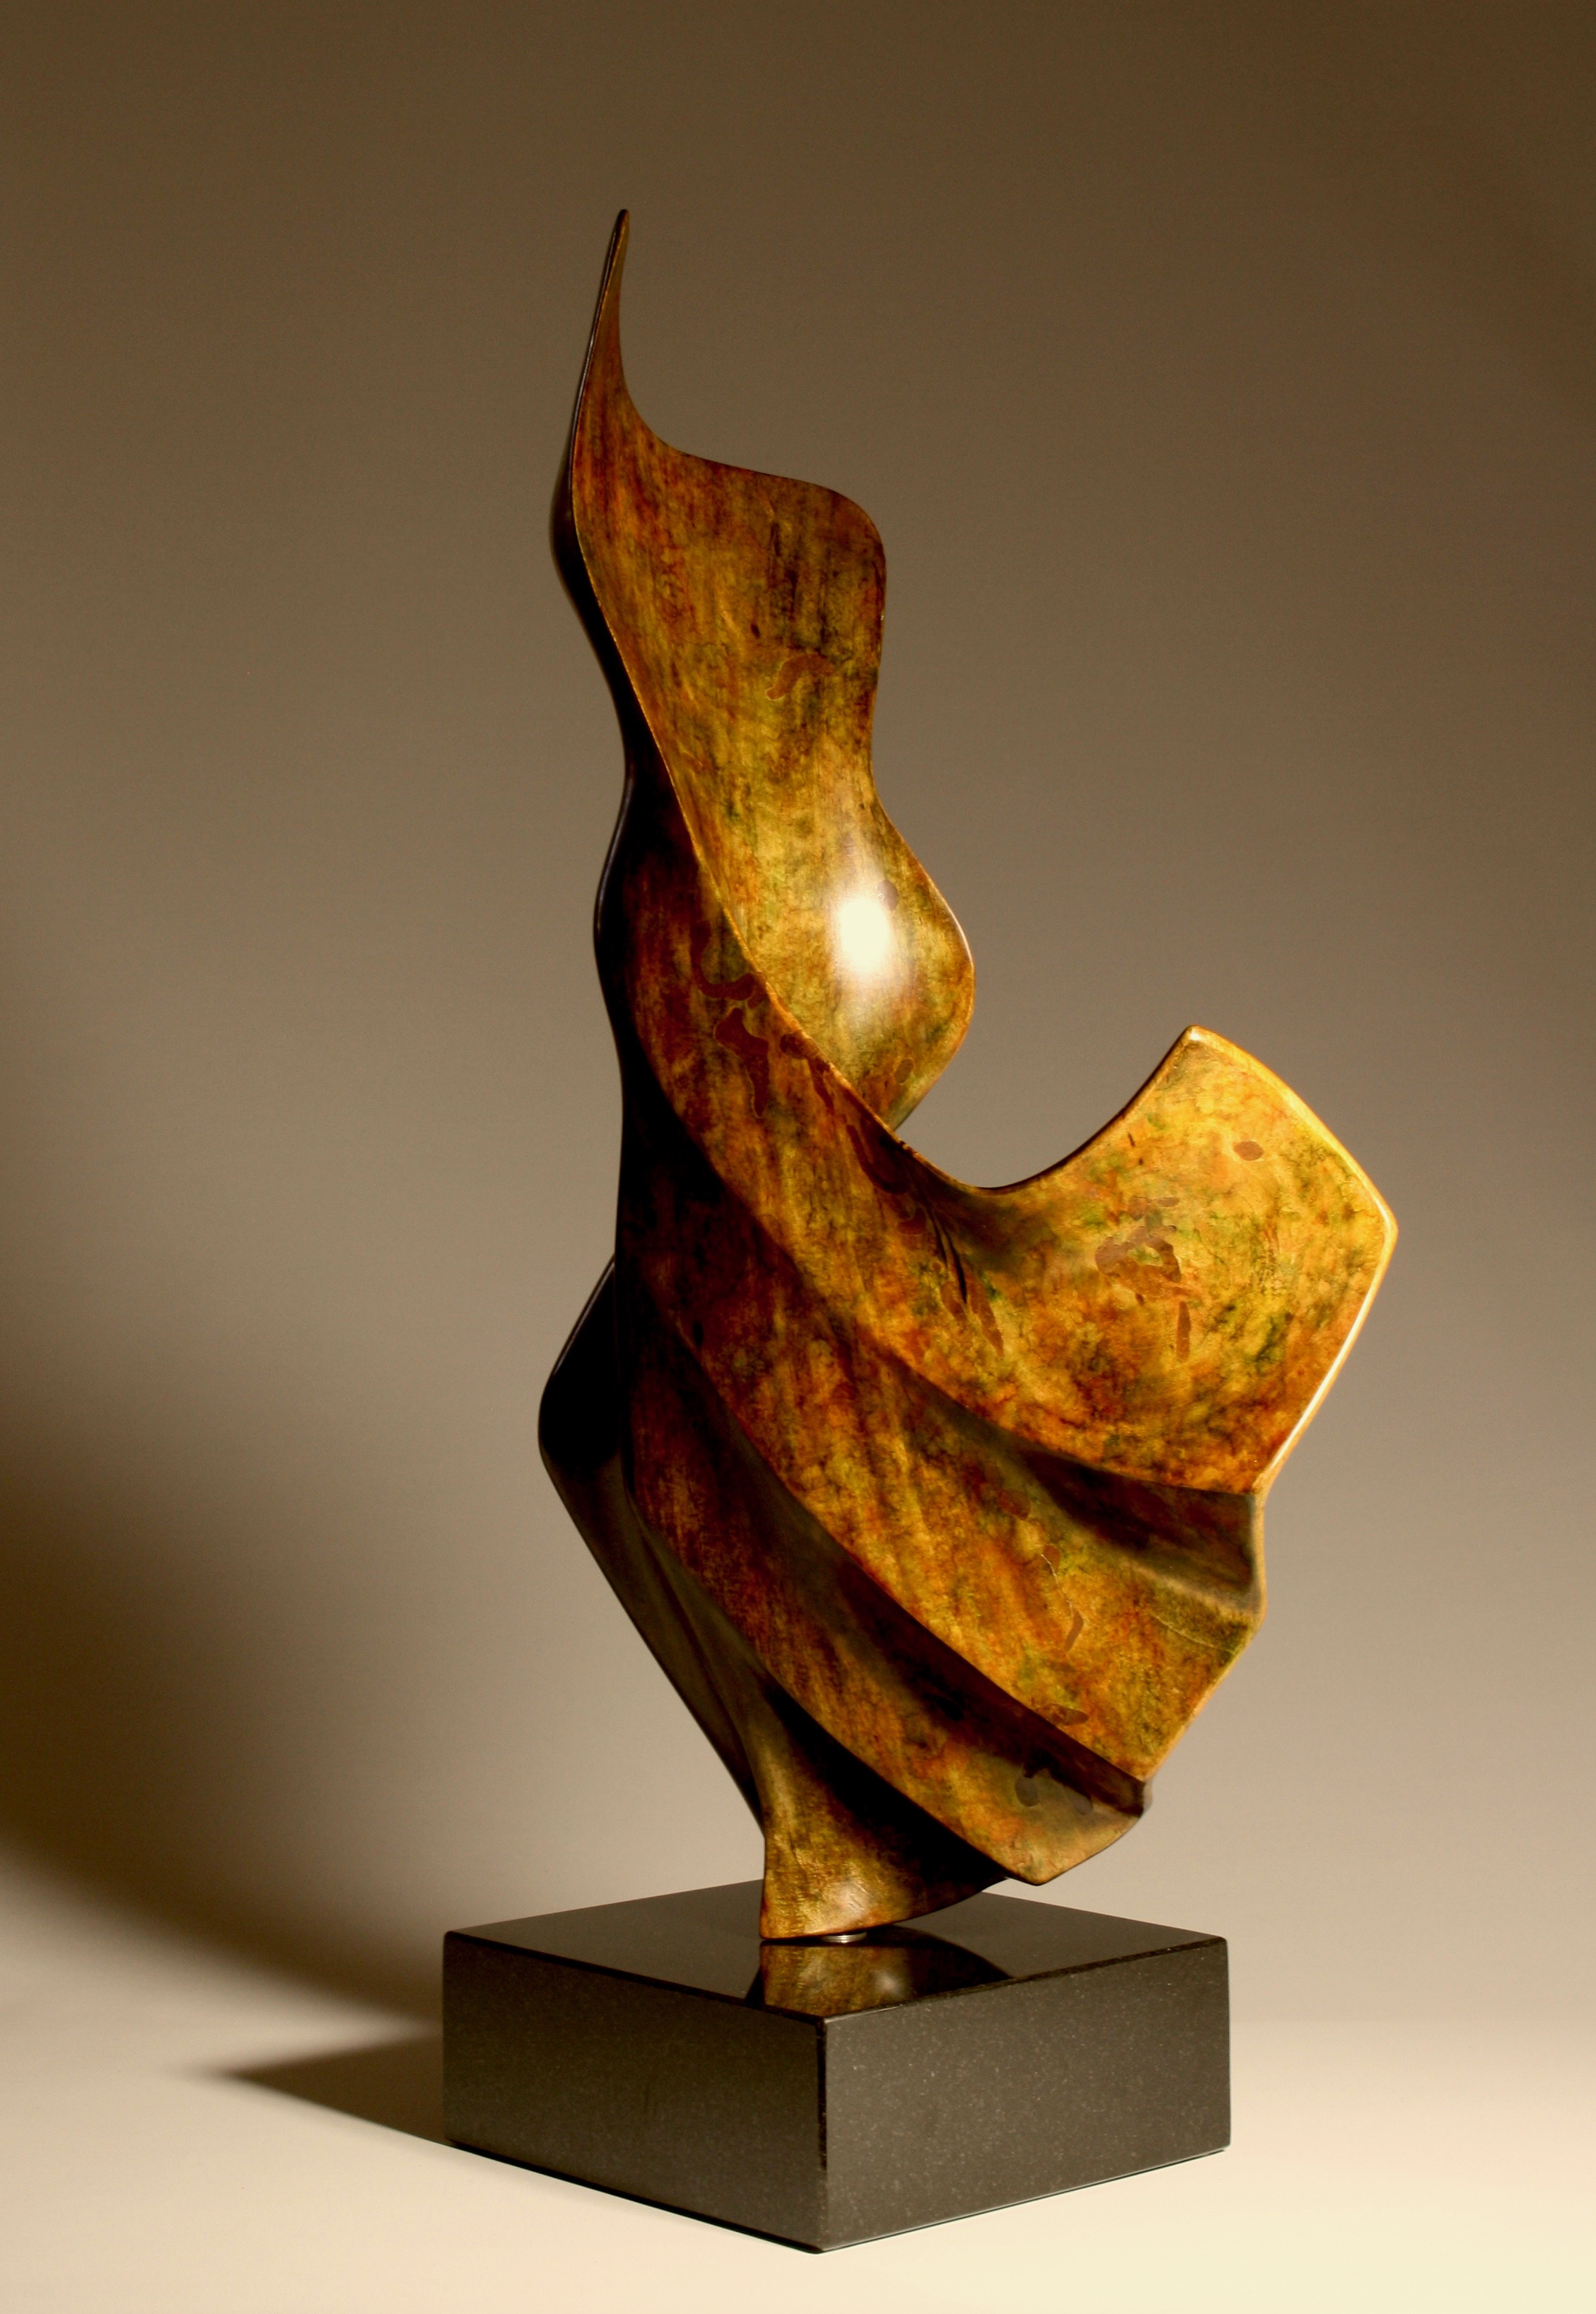 'Dancing in the Wind '- Sold    Wood:  colour dyed Mango   Dimensions:  69x36x20cm   Artist Statement:  This sculpture was inspired after seeing the film 'The Dancer' which I saw at the 2017 Brisbane French Film Festival.  It is based on a true story about Marie Louise Fuller, stage name Loie Fuller, who created a very moving and physically demanding dance for her large flowing silk costumes illuminated by multi-coloured lighting of her own design. She later became famous for her choreography.  2017 Highly Commended - Queensland Royal National Show